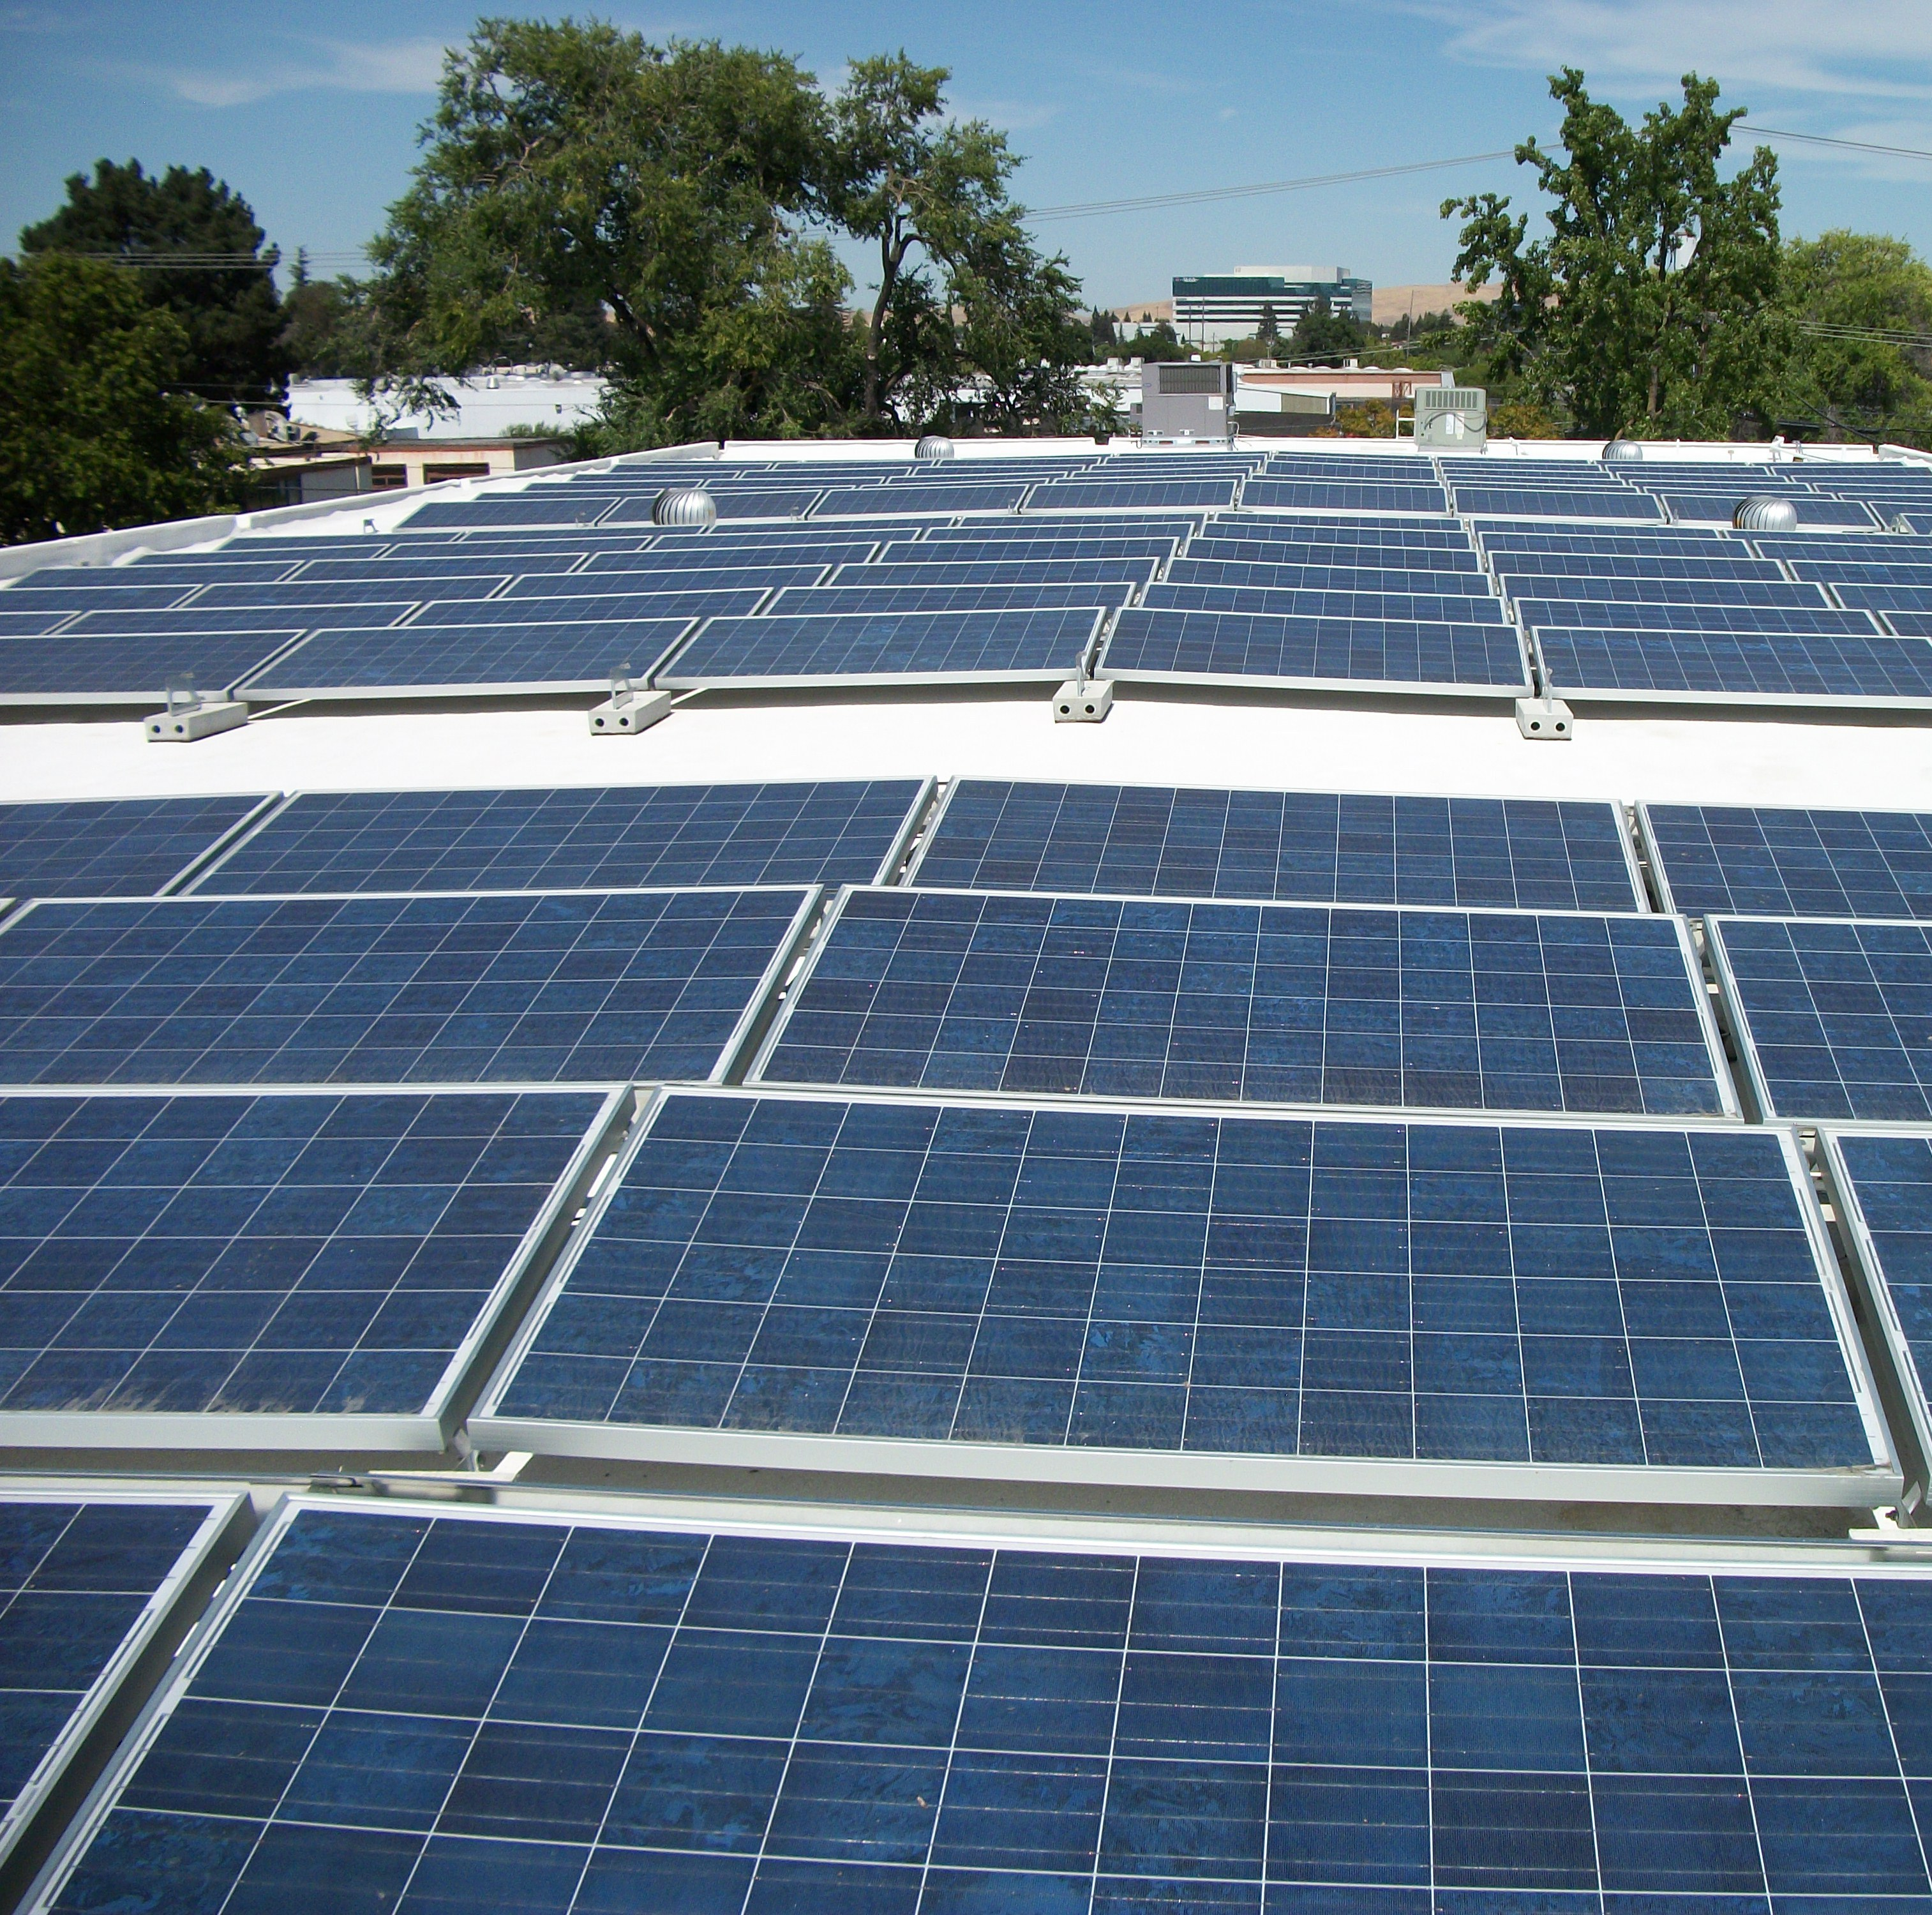 SolarCraft Completes 34.5-kW Solar Energy System in California